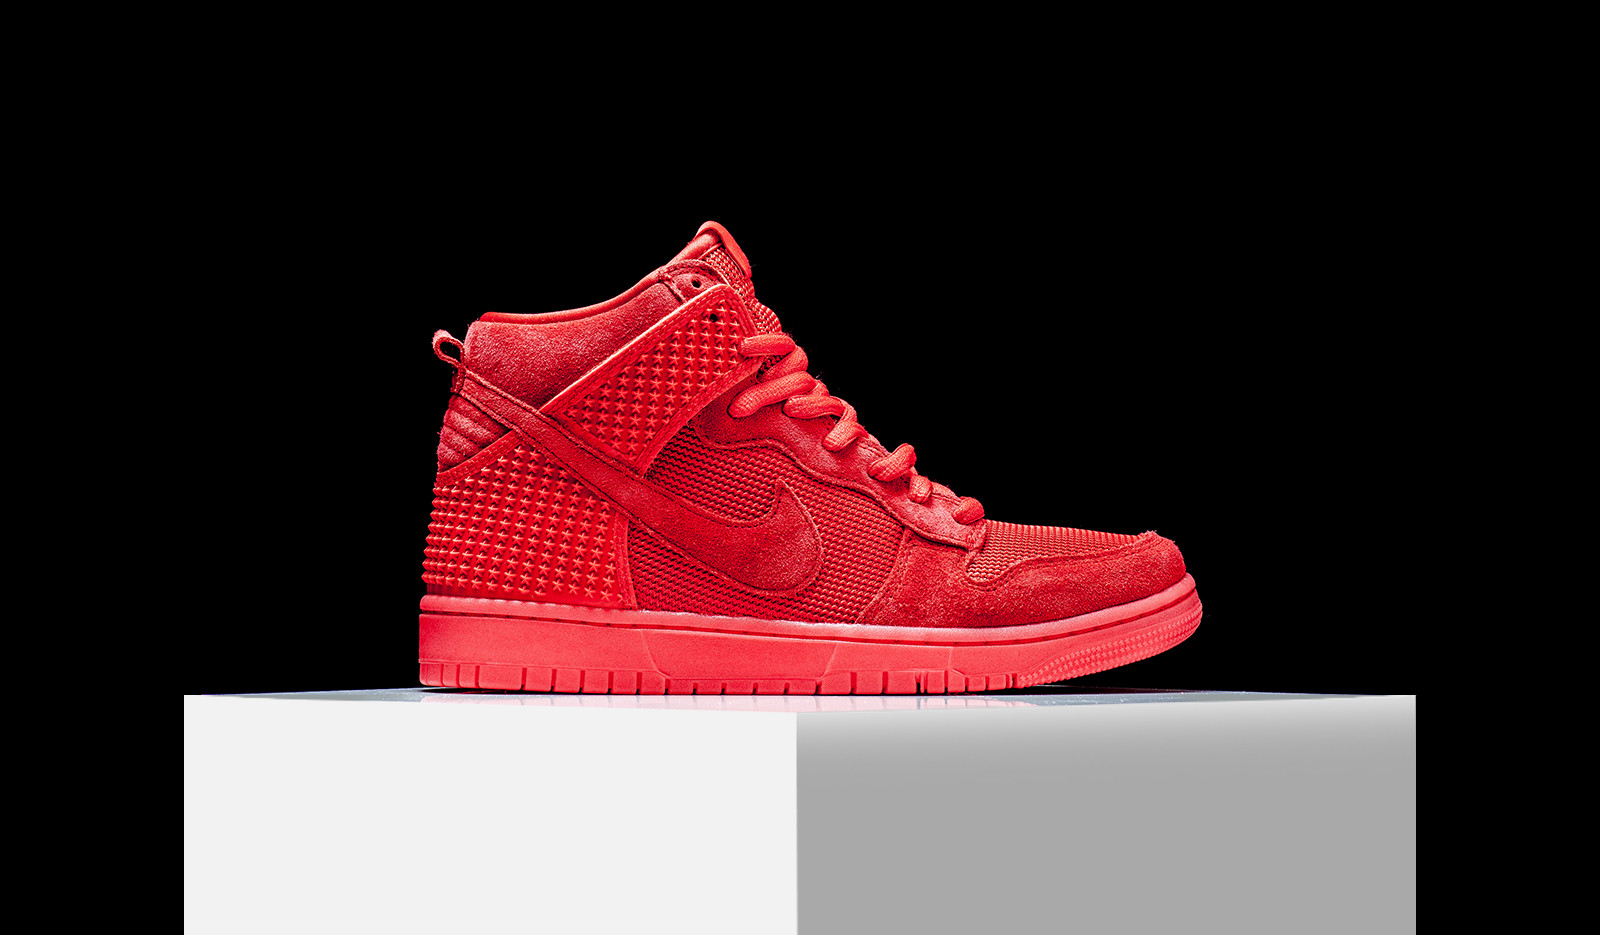 premium selection 9f826 9c1a7 Nike Dunk CMFT Premium Color  Light Crimson Light Crimson Style  705433-601